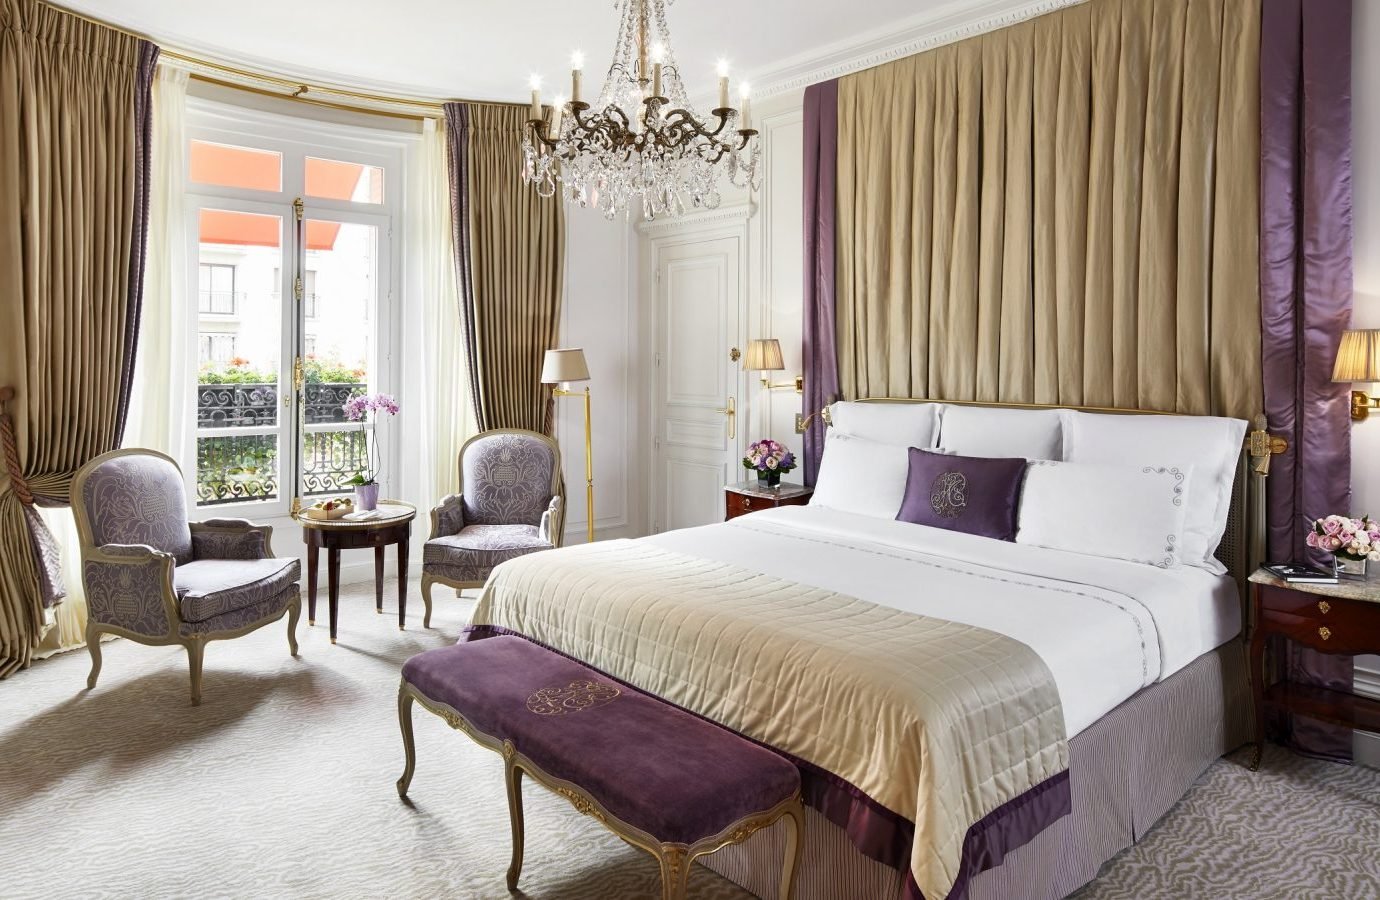 Bedroom at Hotel Plaza Athenee